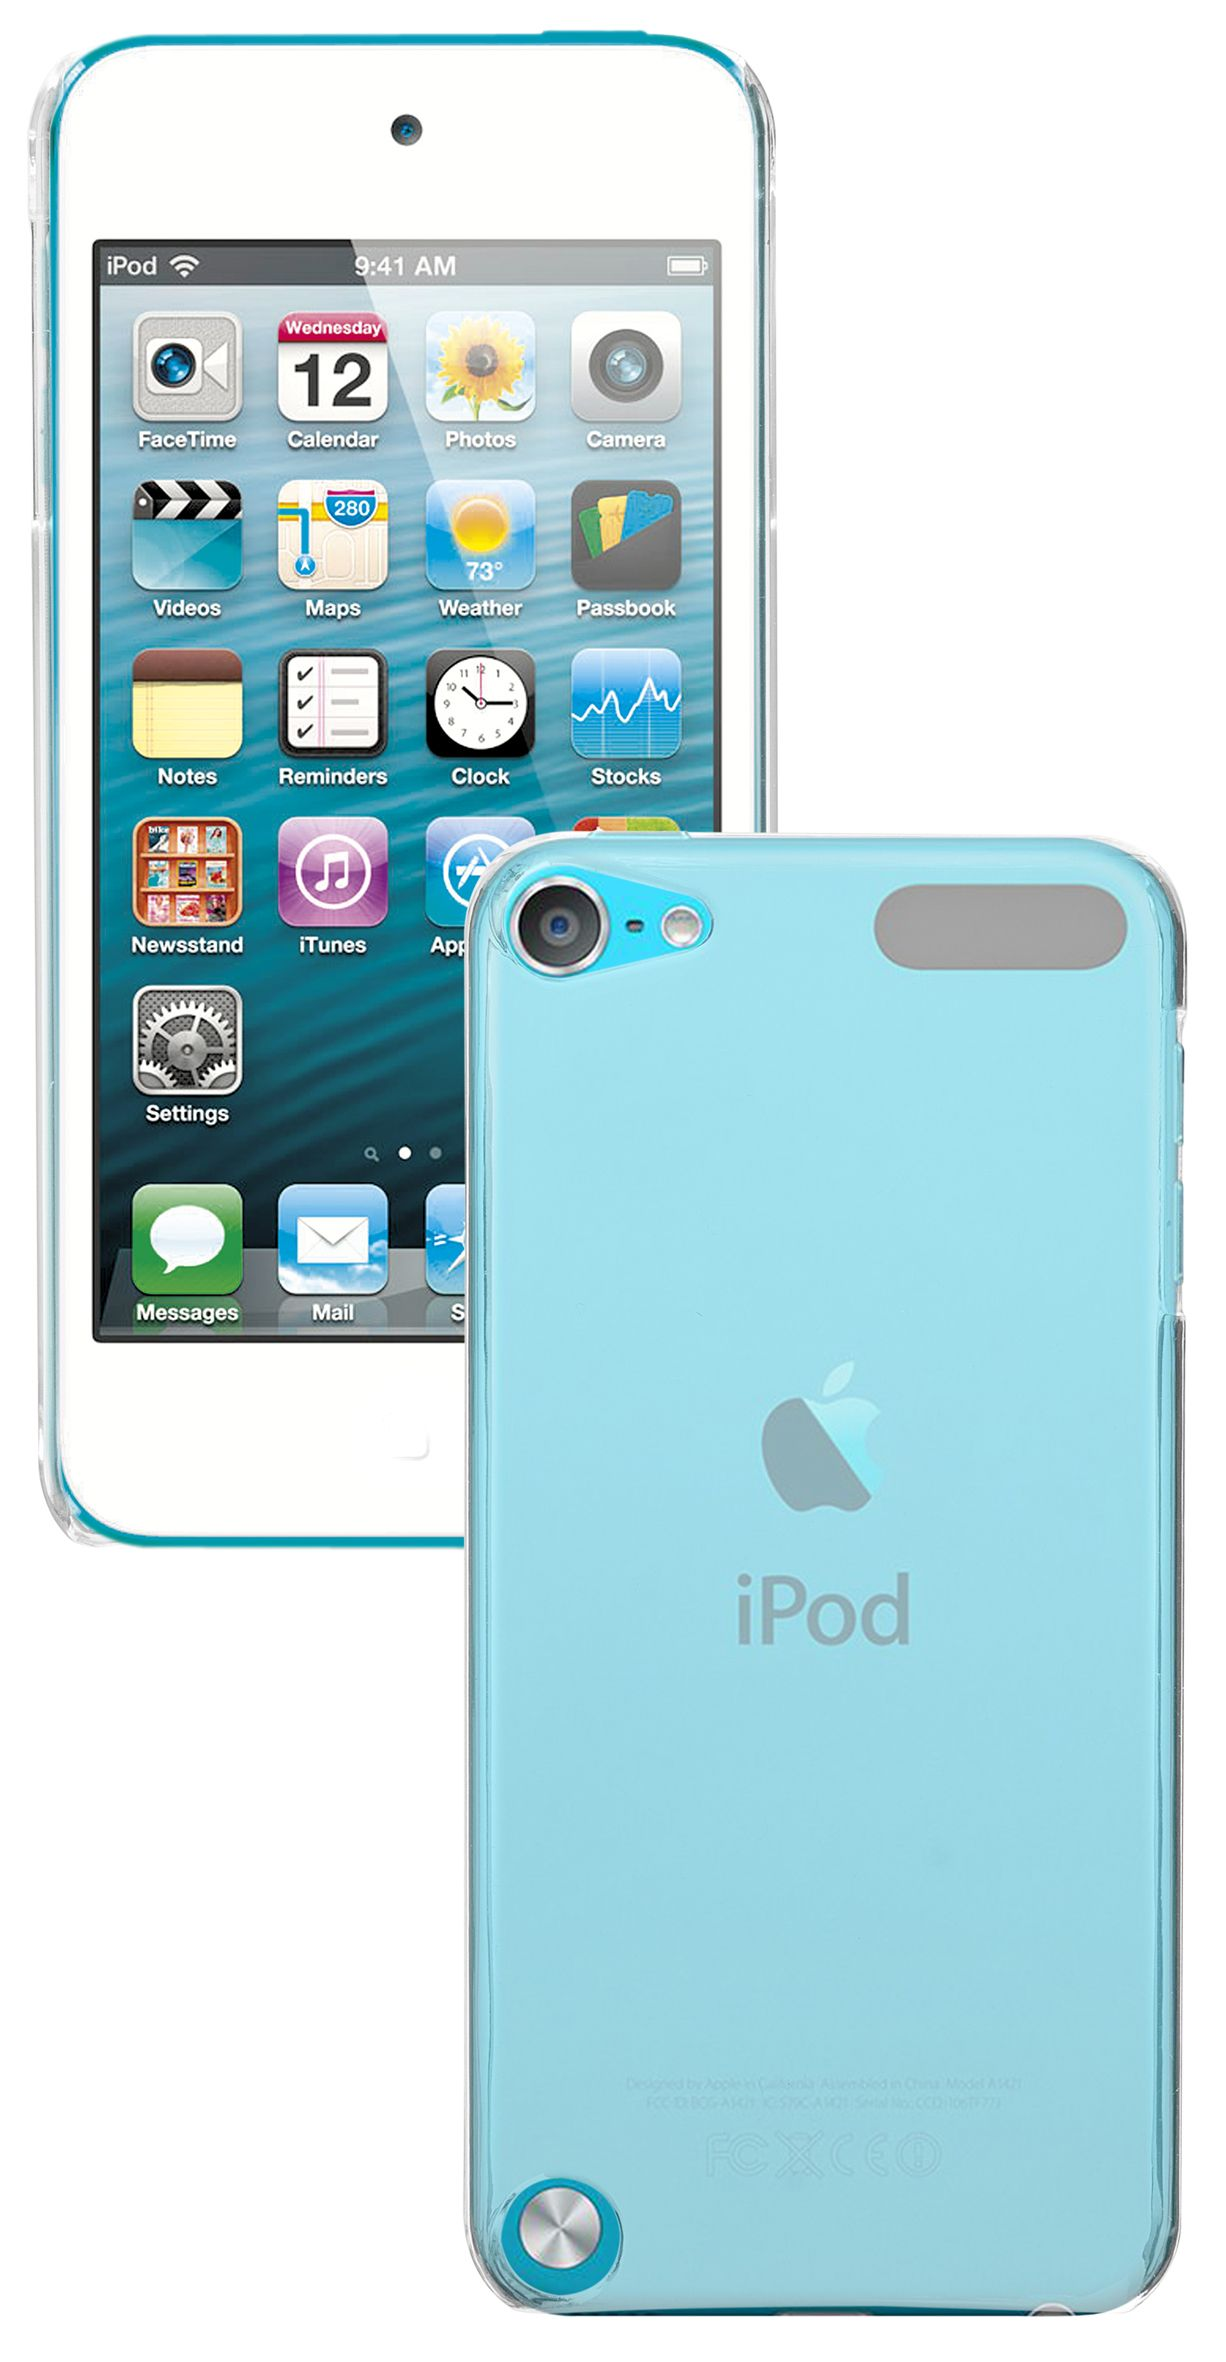 7dfa191c97d53dd97cac9a93183a333a - How To Get Into A Locked Ipod Touch 5